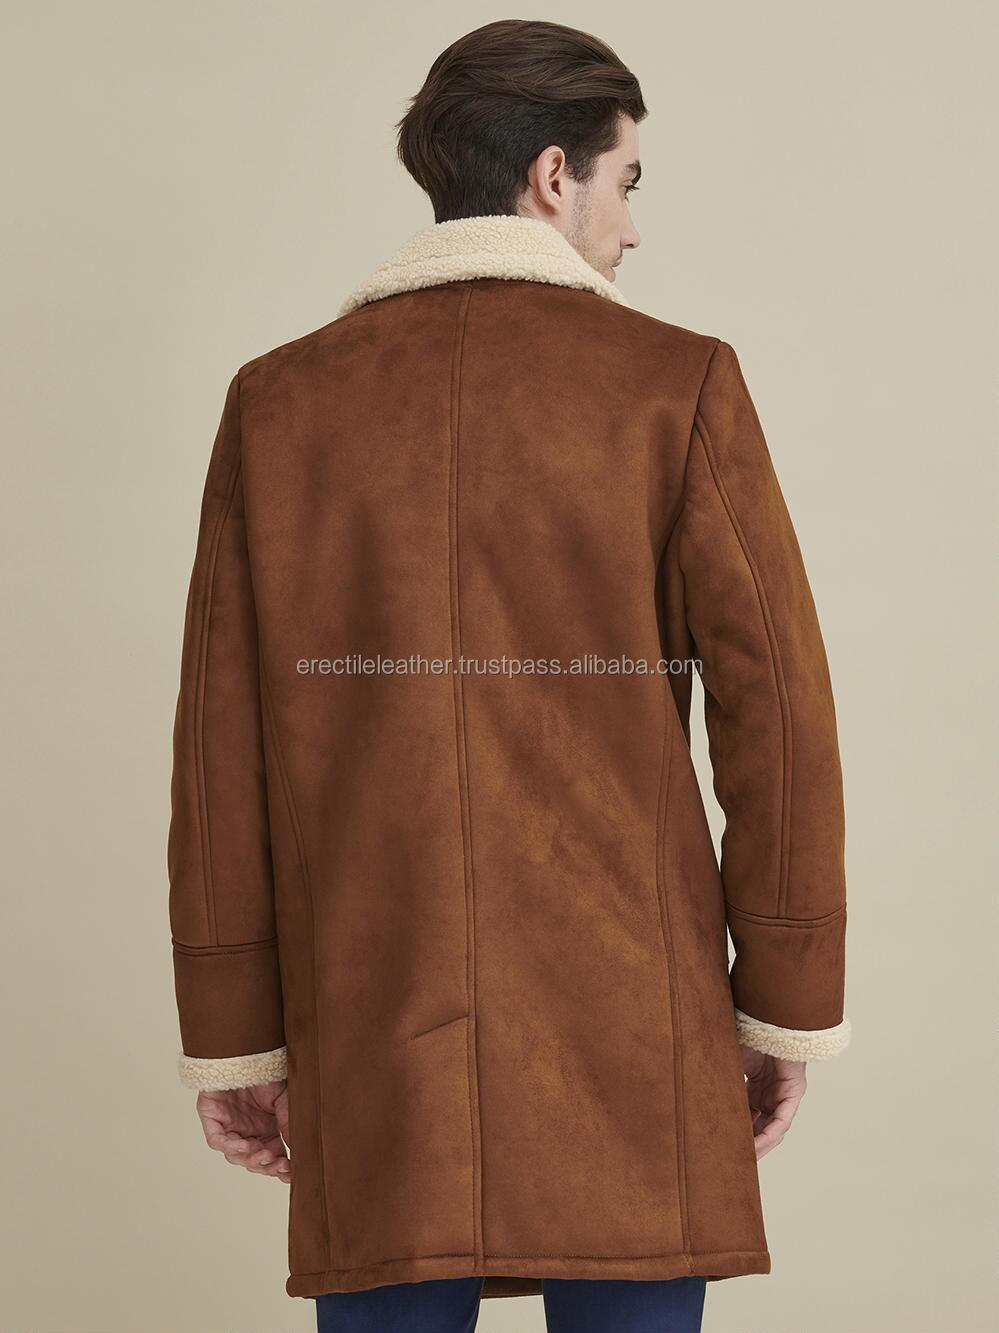 Genuine Leather Men's Faux Shearling Coat Brown Plus Size Winter Style With Wholesale Price